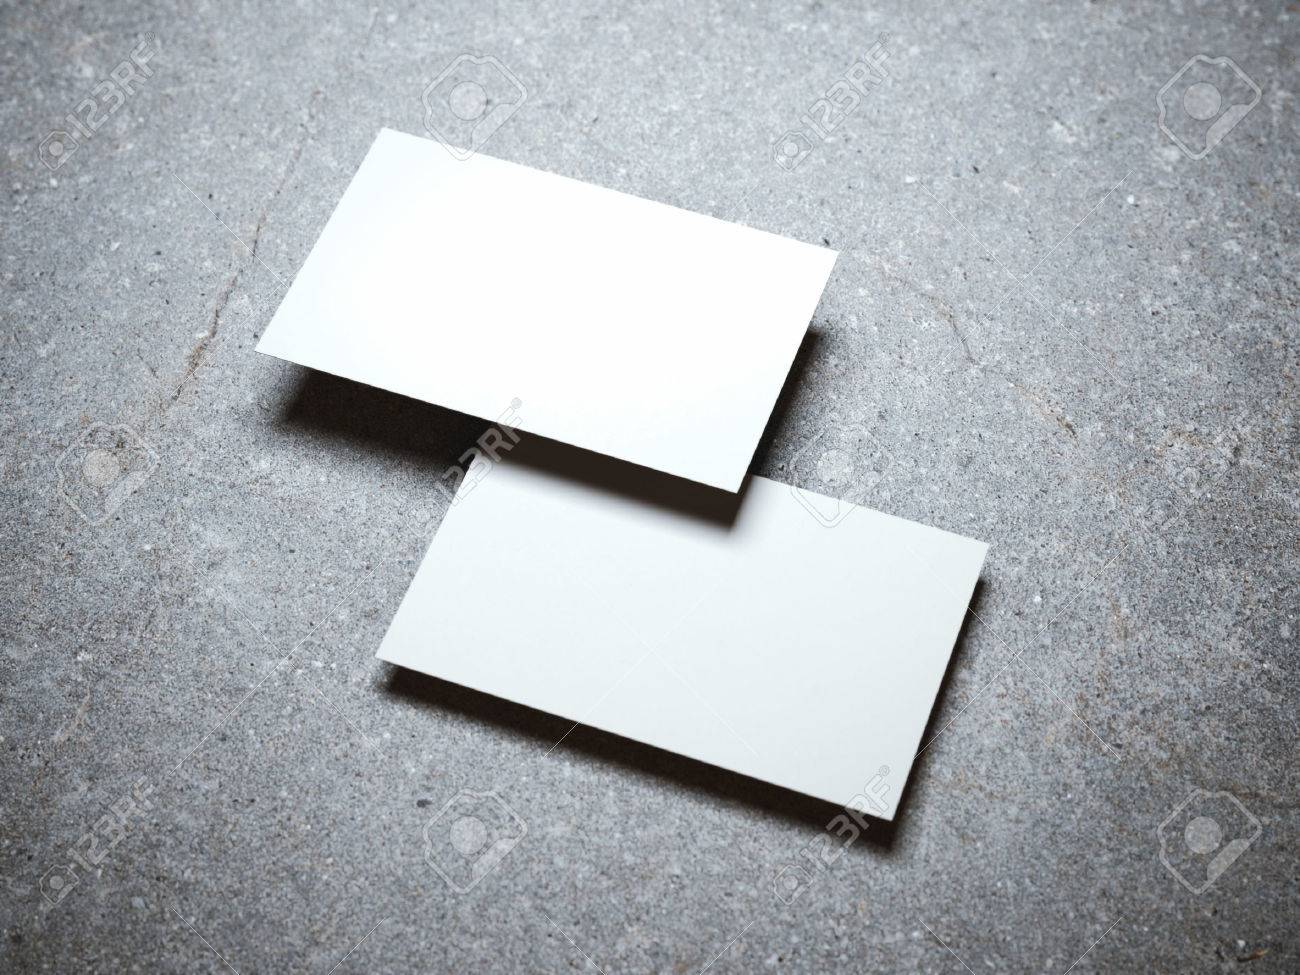 Two Blank White Business Cards On The Concrete Floor Stock Photo ...